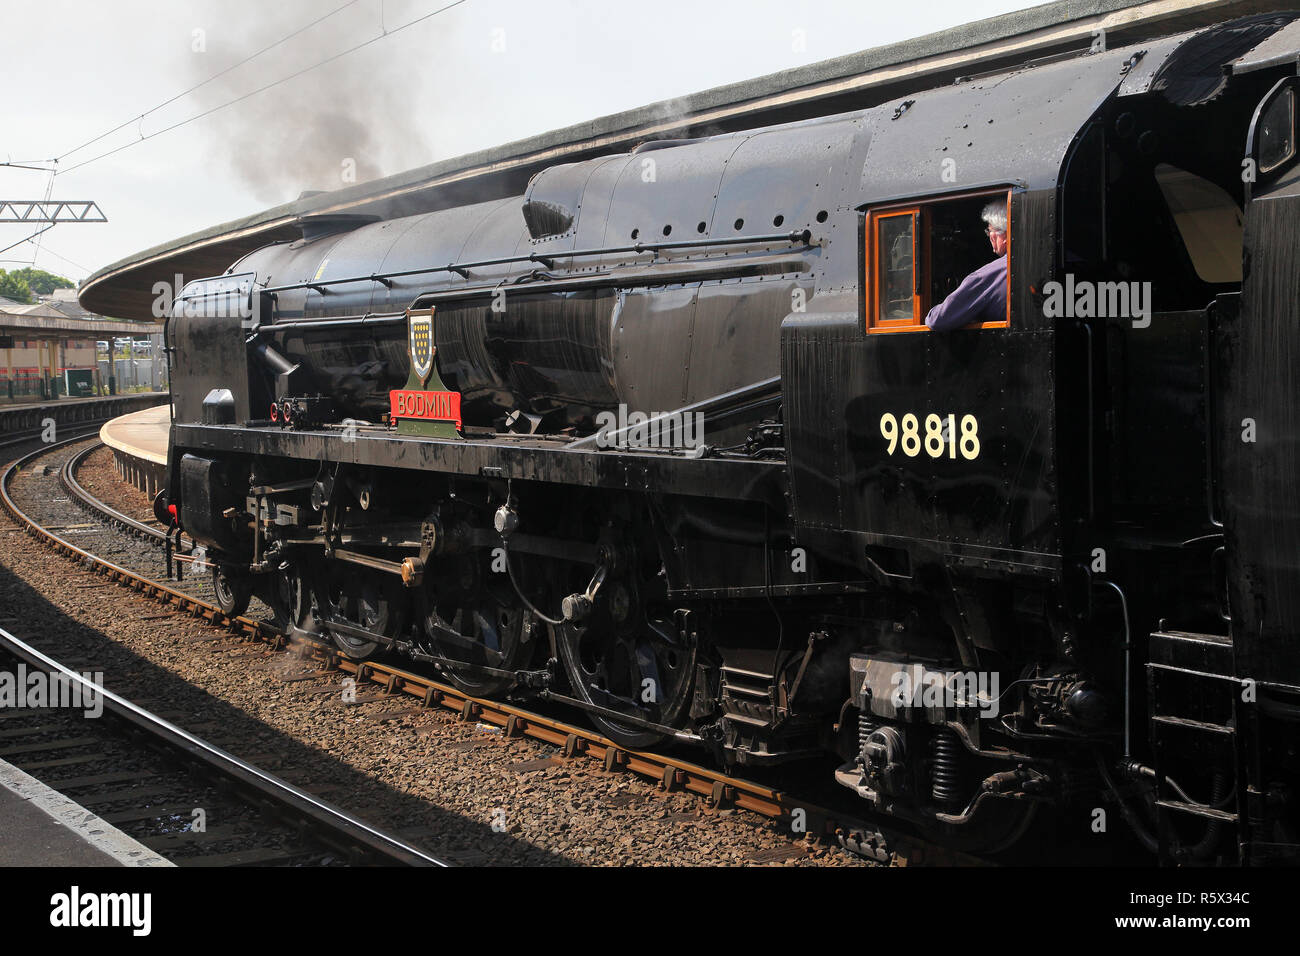 35018 British India Line with the Tops number 98818 and Bodmin nameplates on waits at Carnforth on 24.5.17. - Stock Image